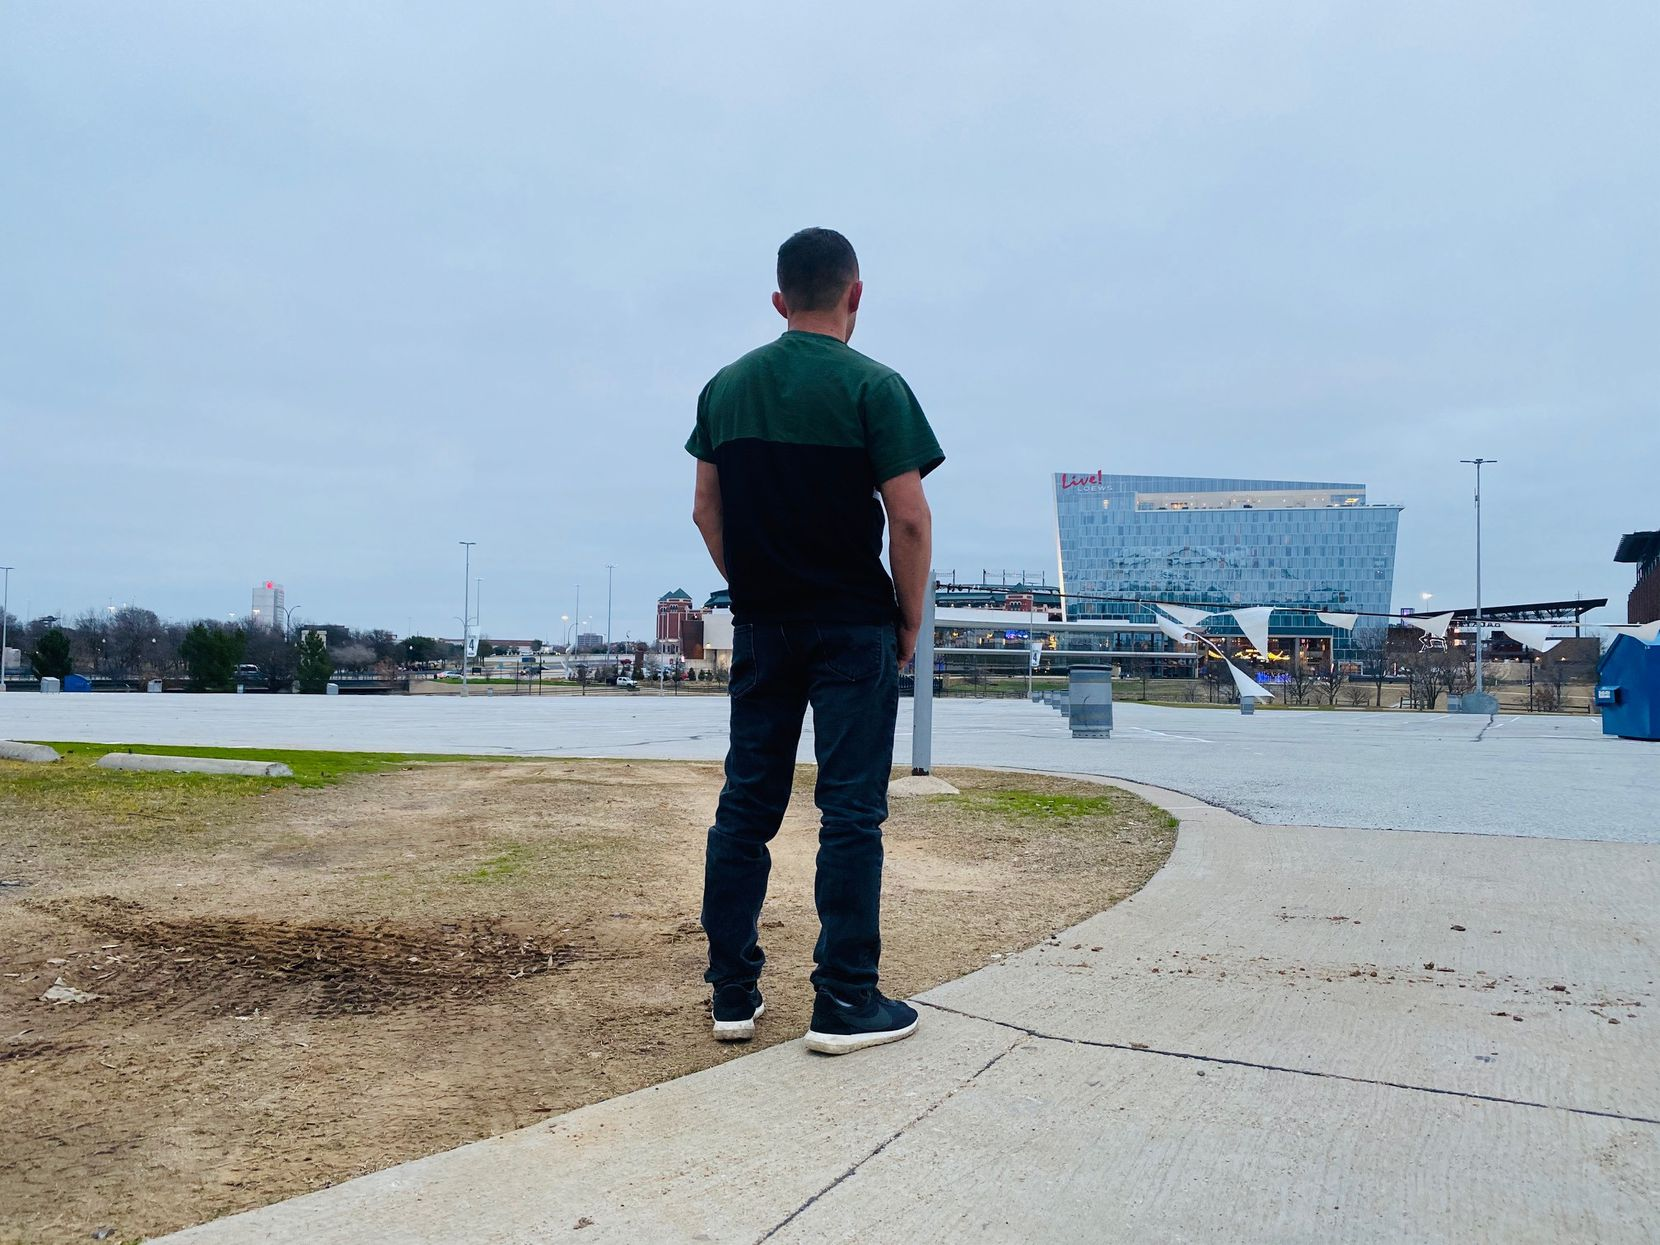 Carlos Joaquin Salinas works in North Texas as he waits for his hearing to make his asylum case before the U.S. government